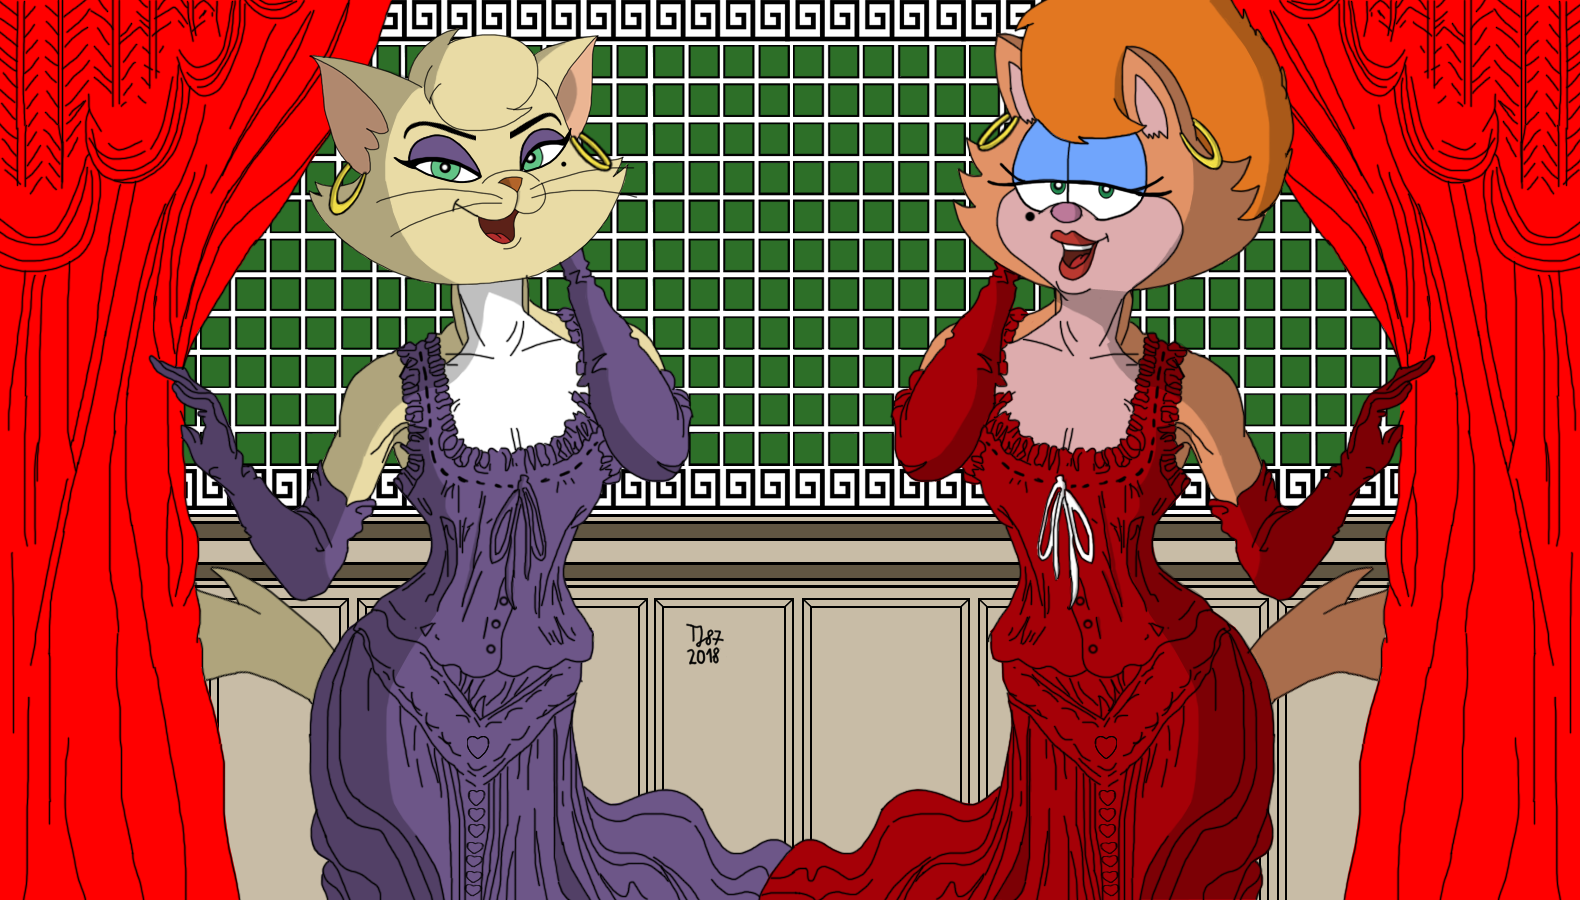 Victorian Fashion: Delilah and Kitty by TeeJay87